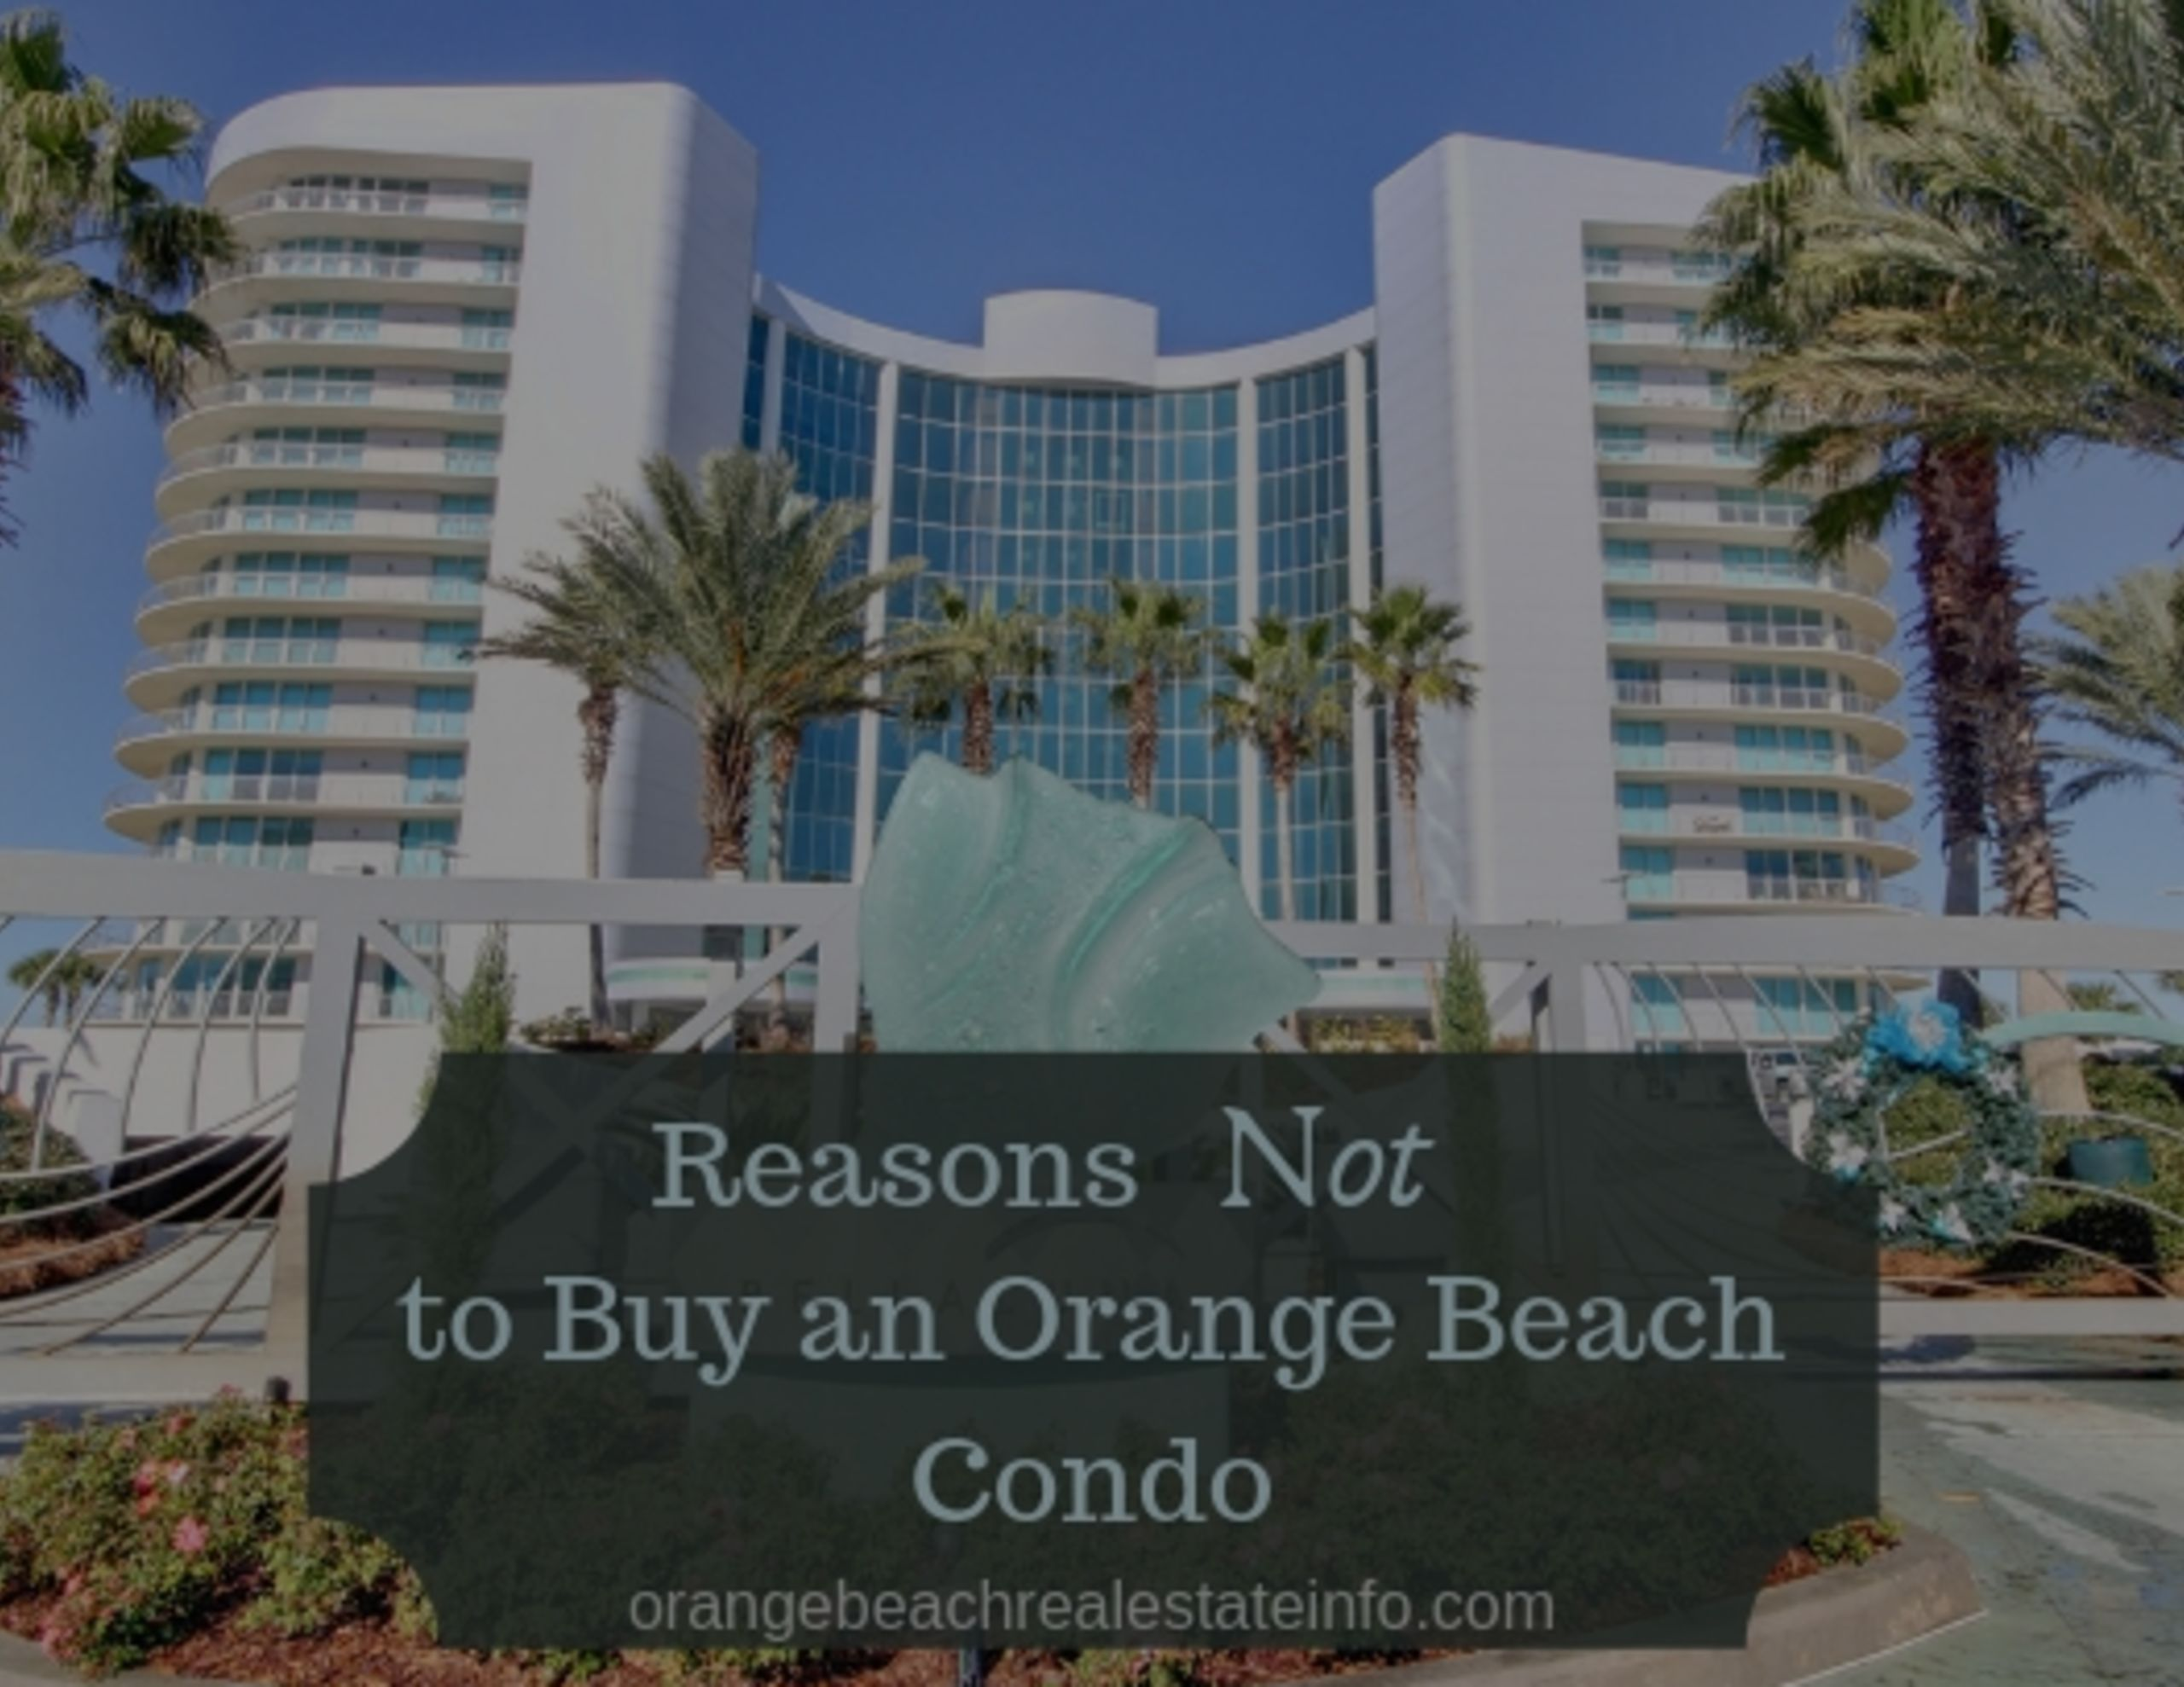 Reasons Not to Buy an Orange Beach Condo